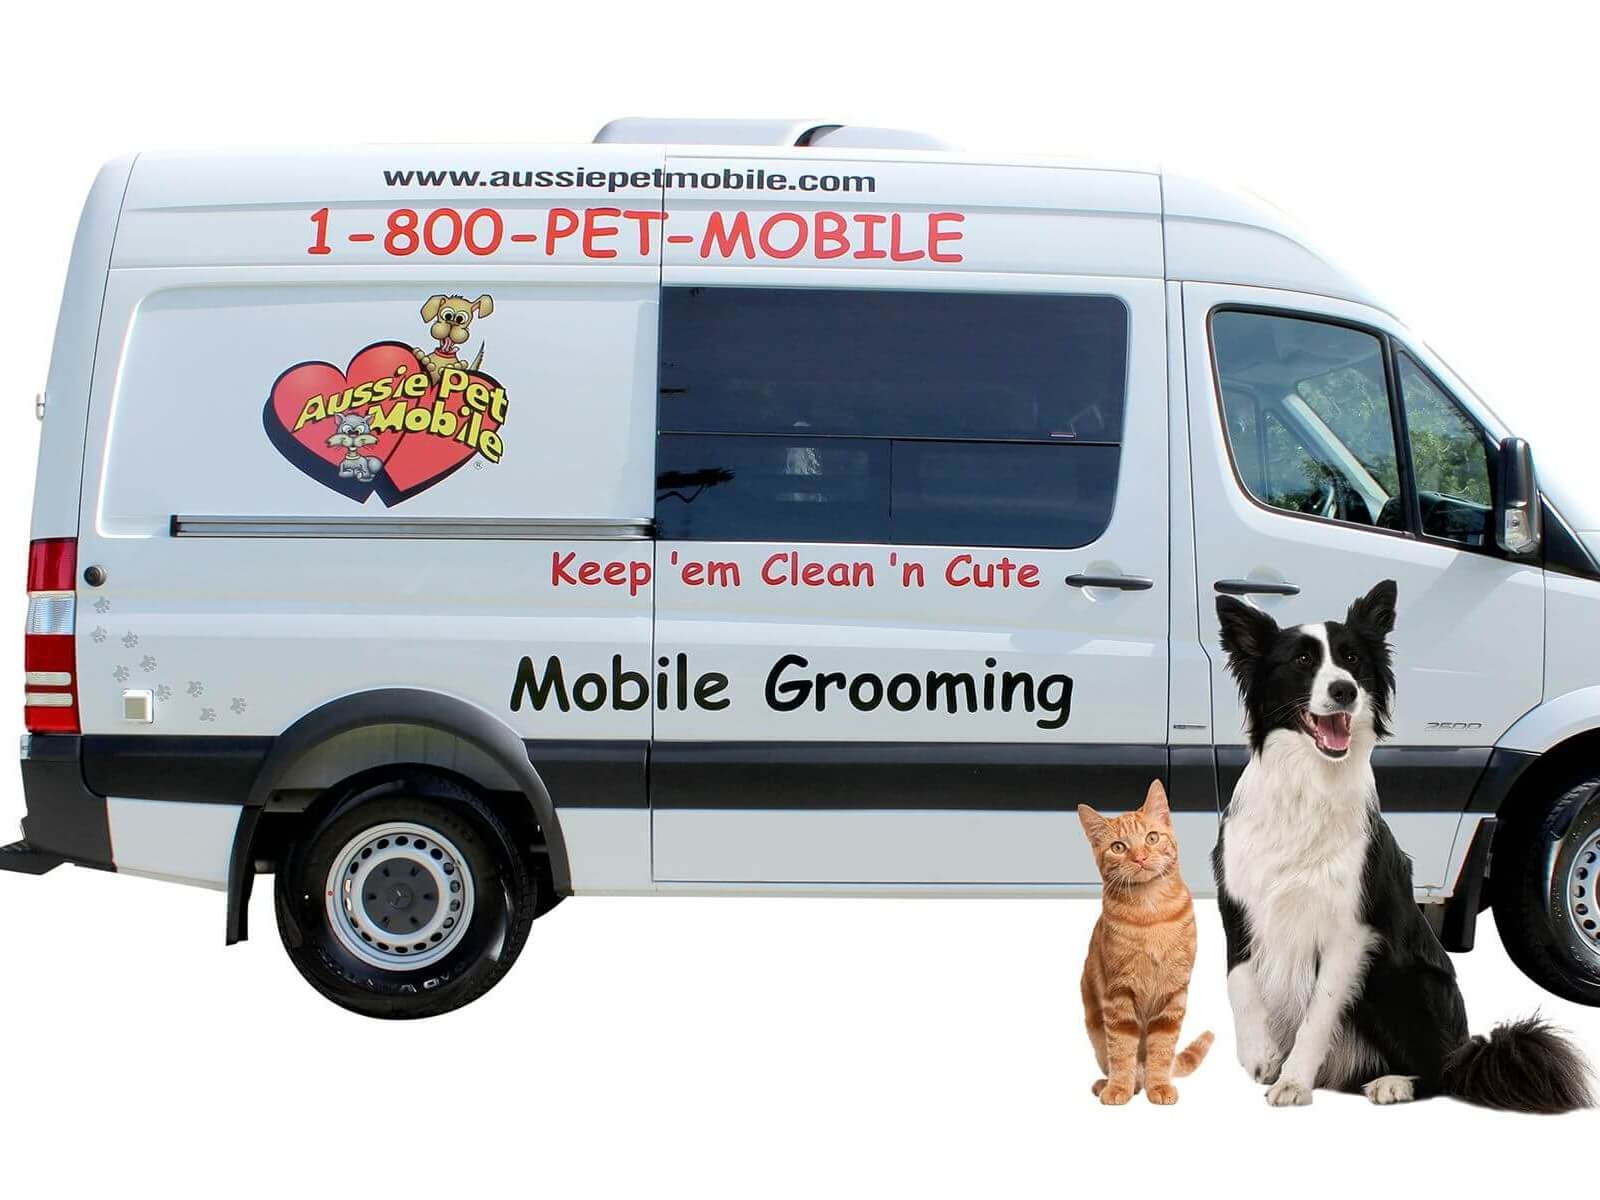 Aussie Pet Mobile SE Orlando | Mobile Grooming for Cats & Dogs